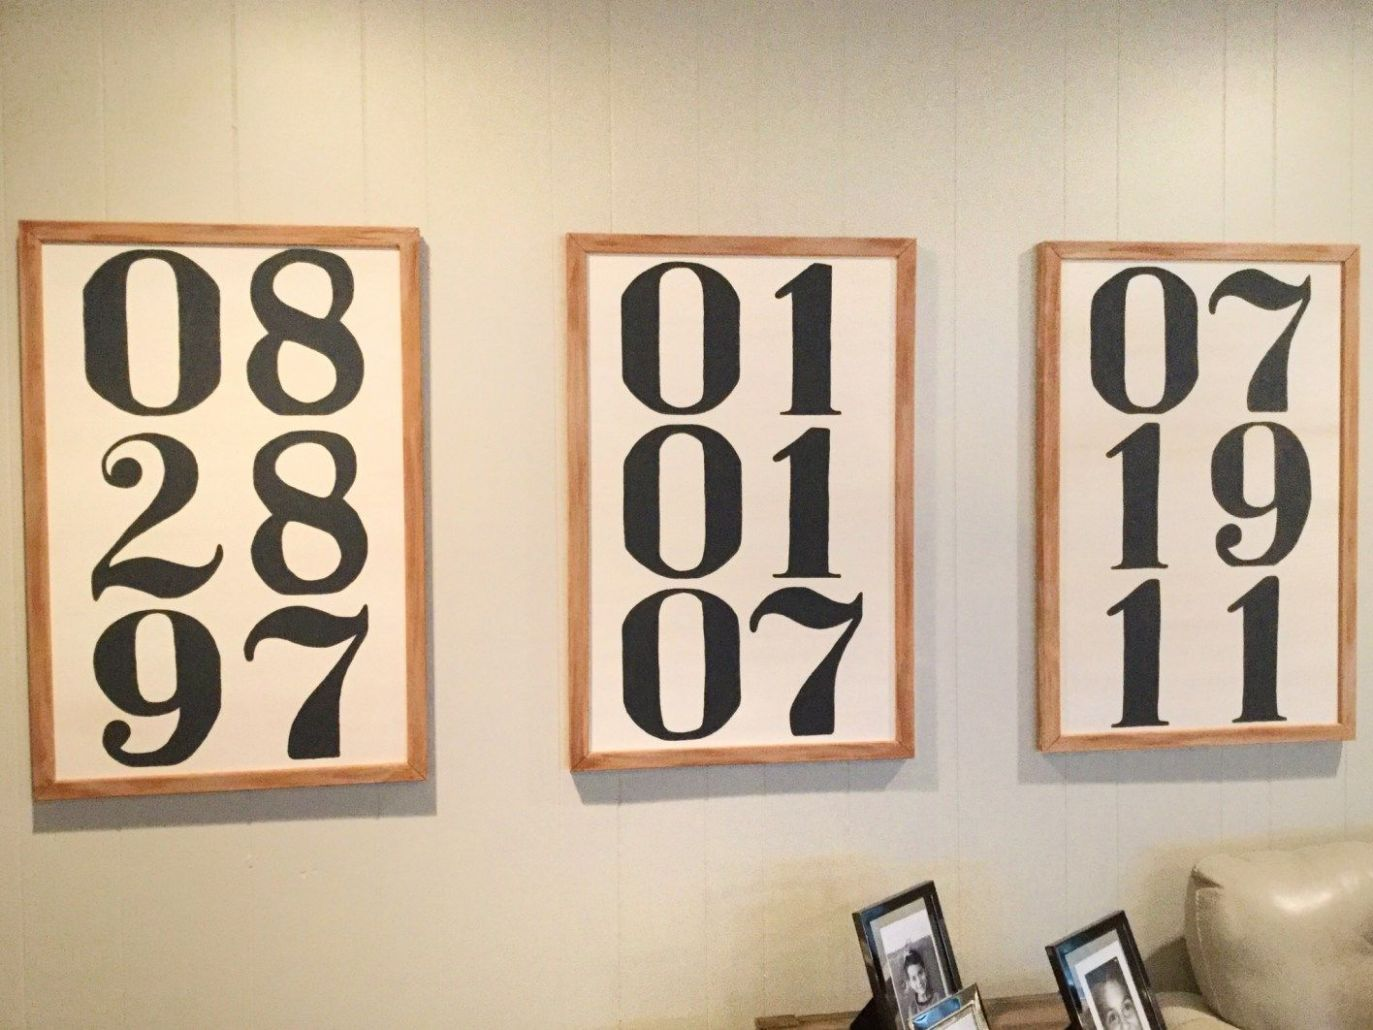 Decorating With Numbers DIY | Decor, Diy, Home decor